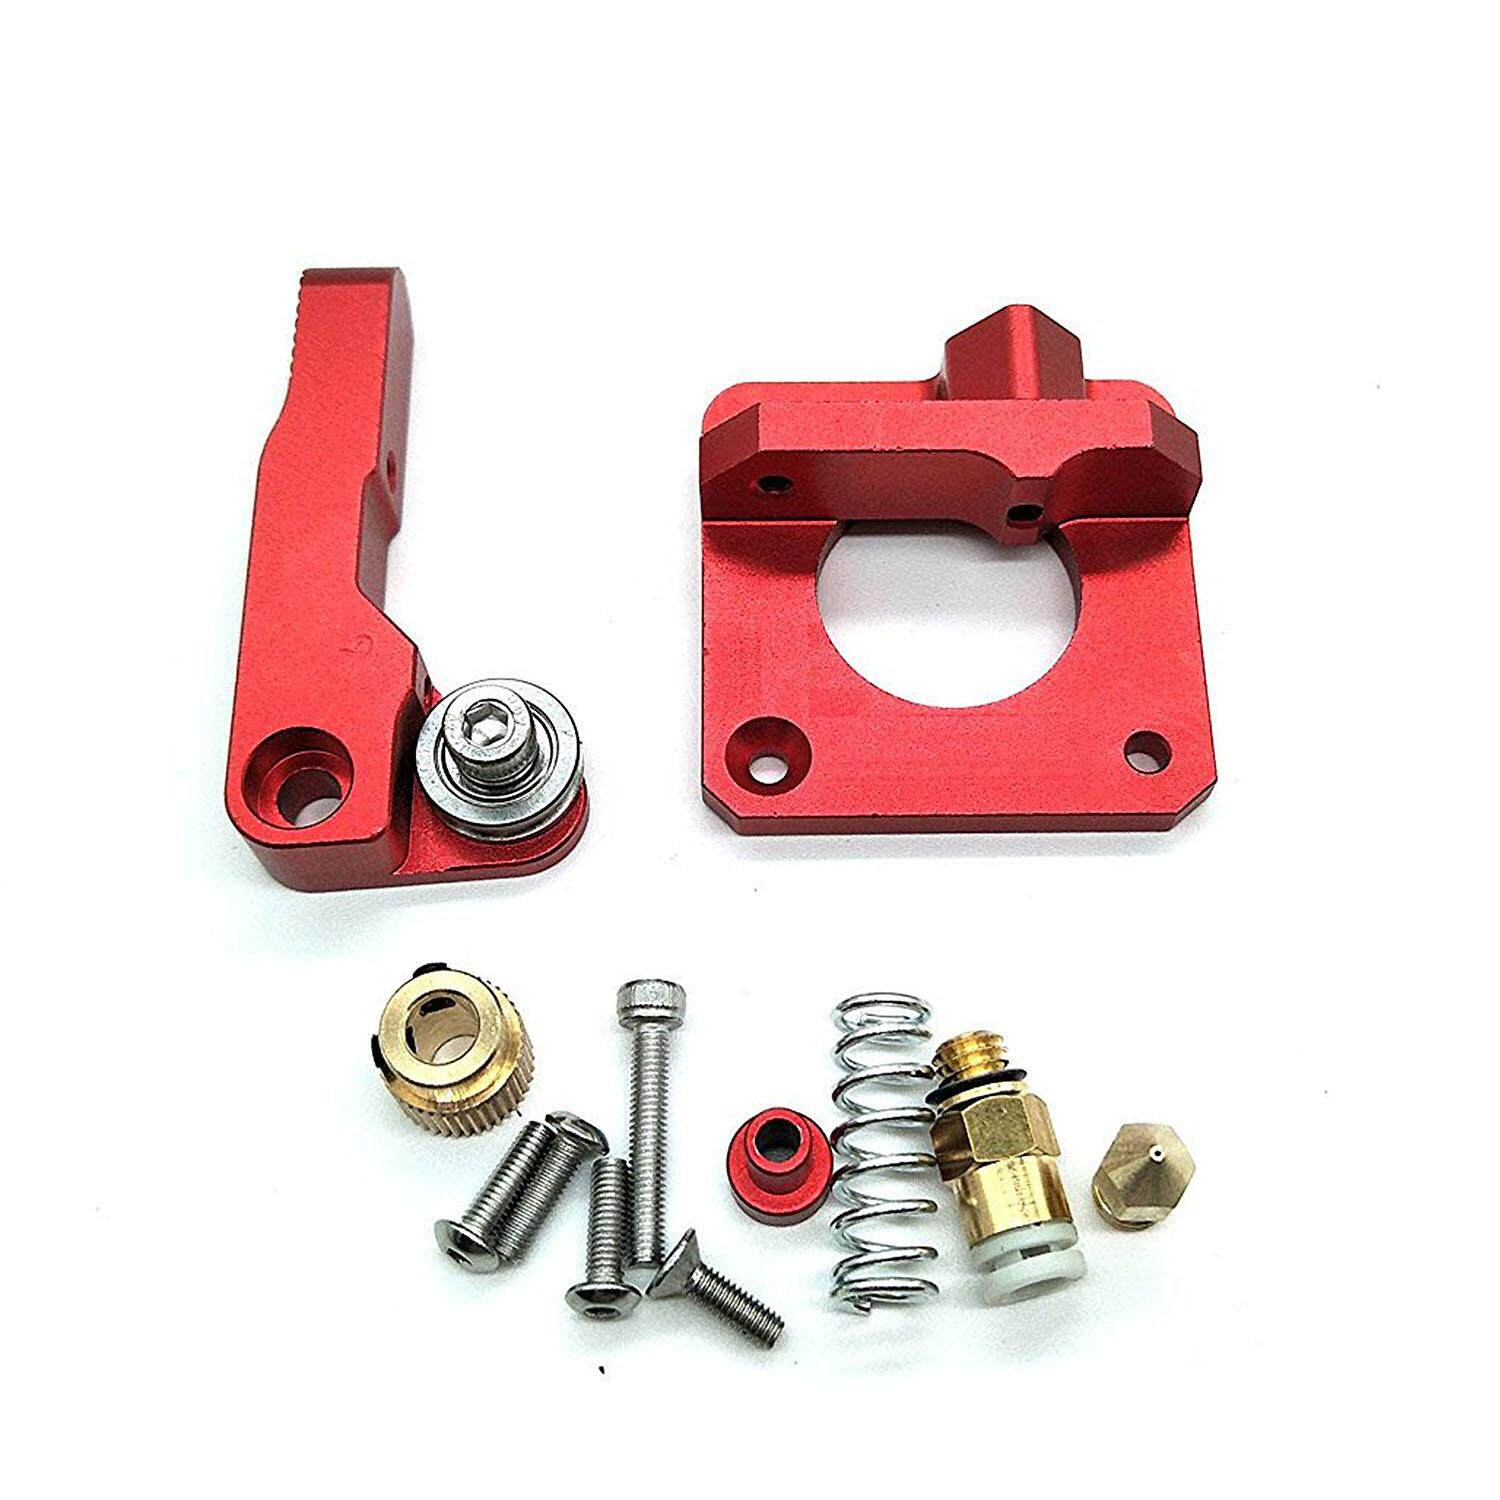 Cr-10 Extruder Upgraded Replacement, Aluminum Mk8 Drive Feed 3d Printer Extruders For Creality Cr-10, Cr-10s, Cr-10 S4, Cr-10 S5, Reprap Prusa I3, 1.75mm - Intl By Sunnny2015.